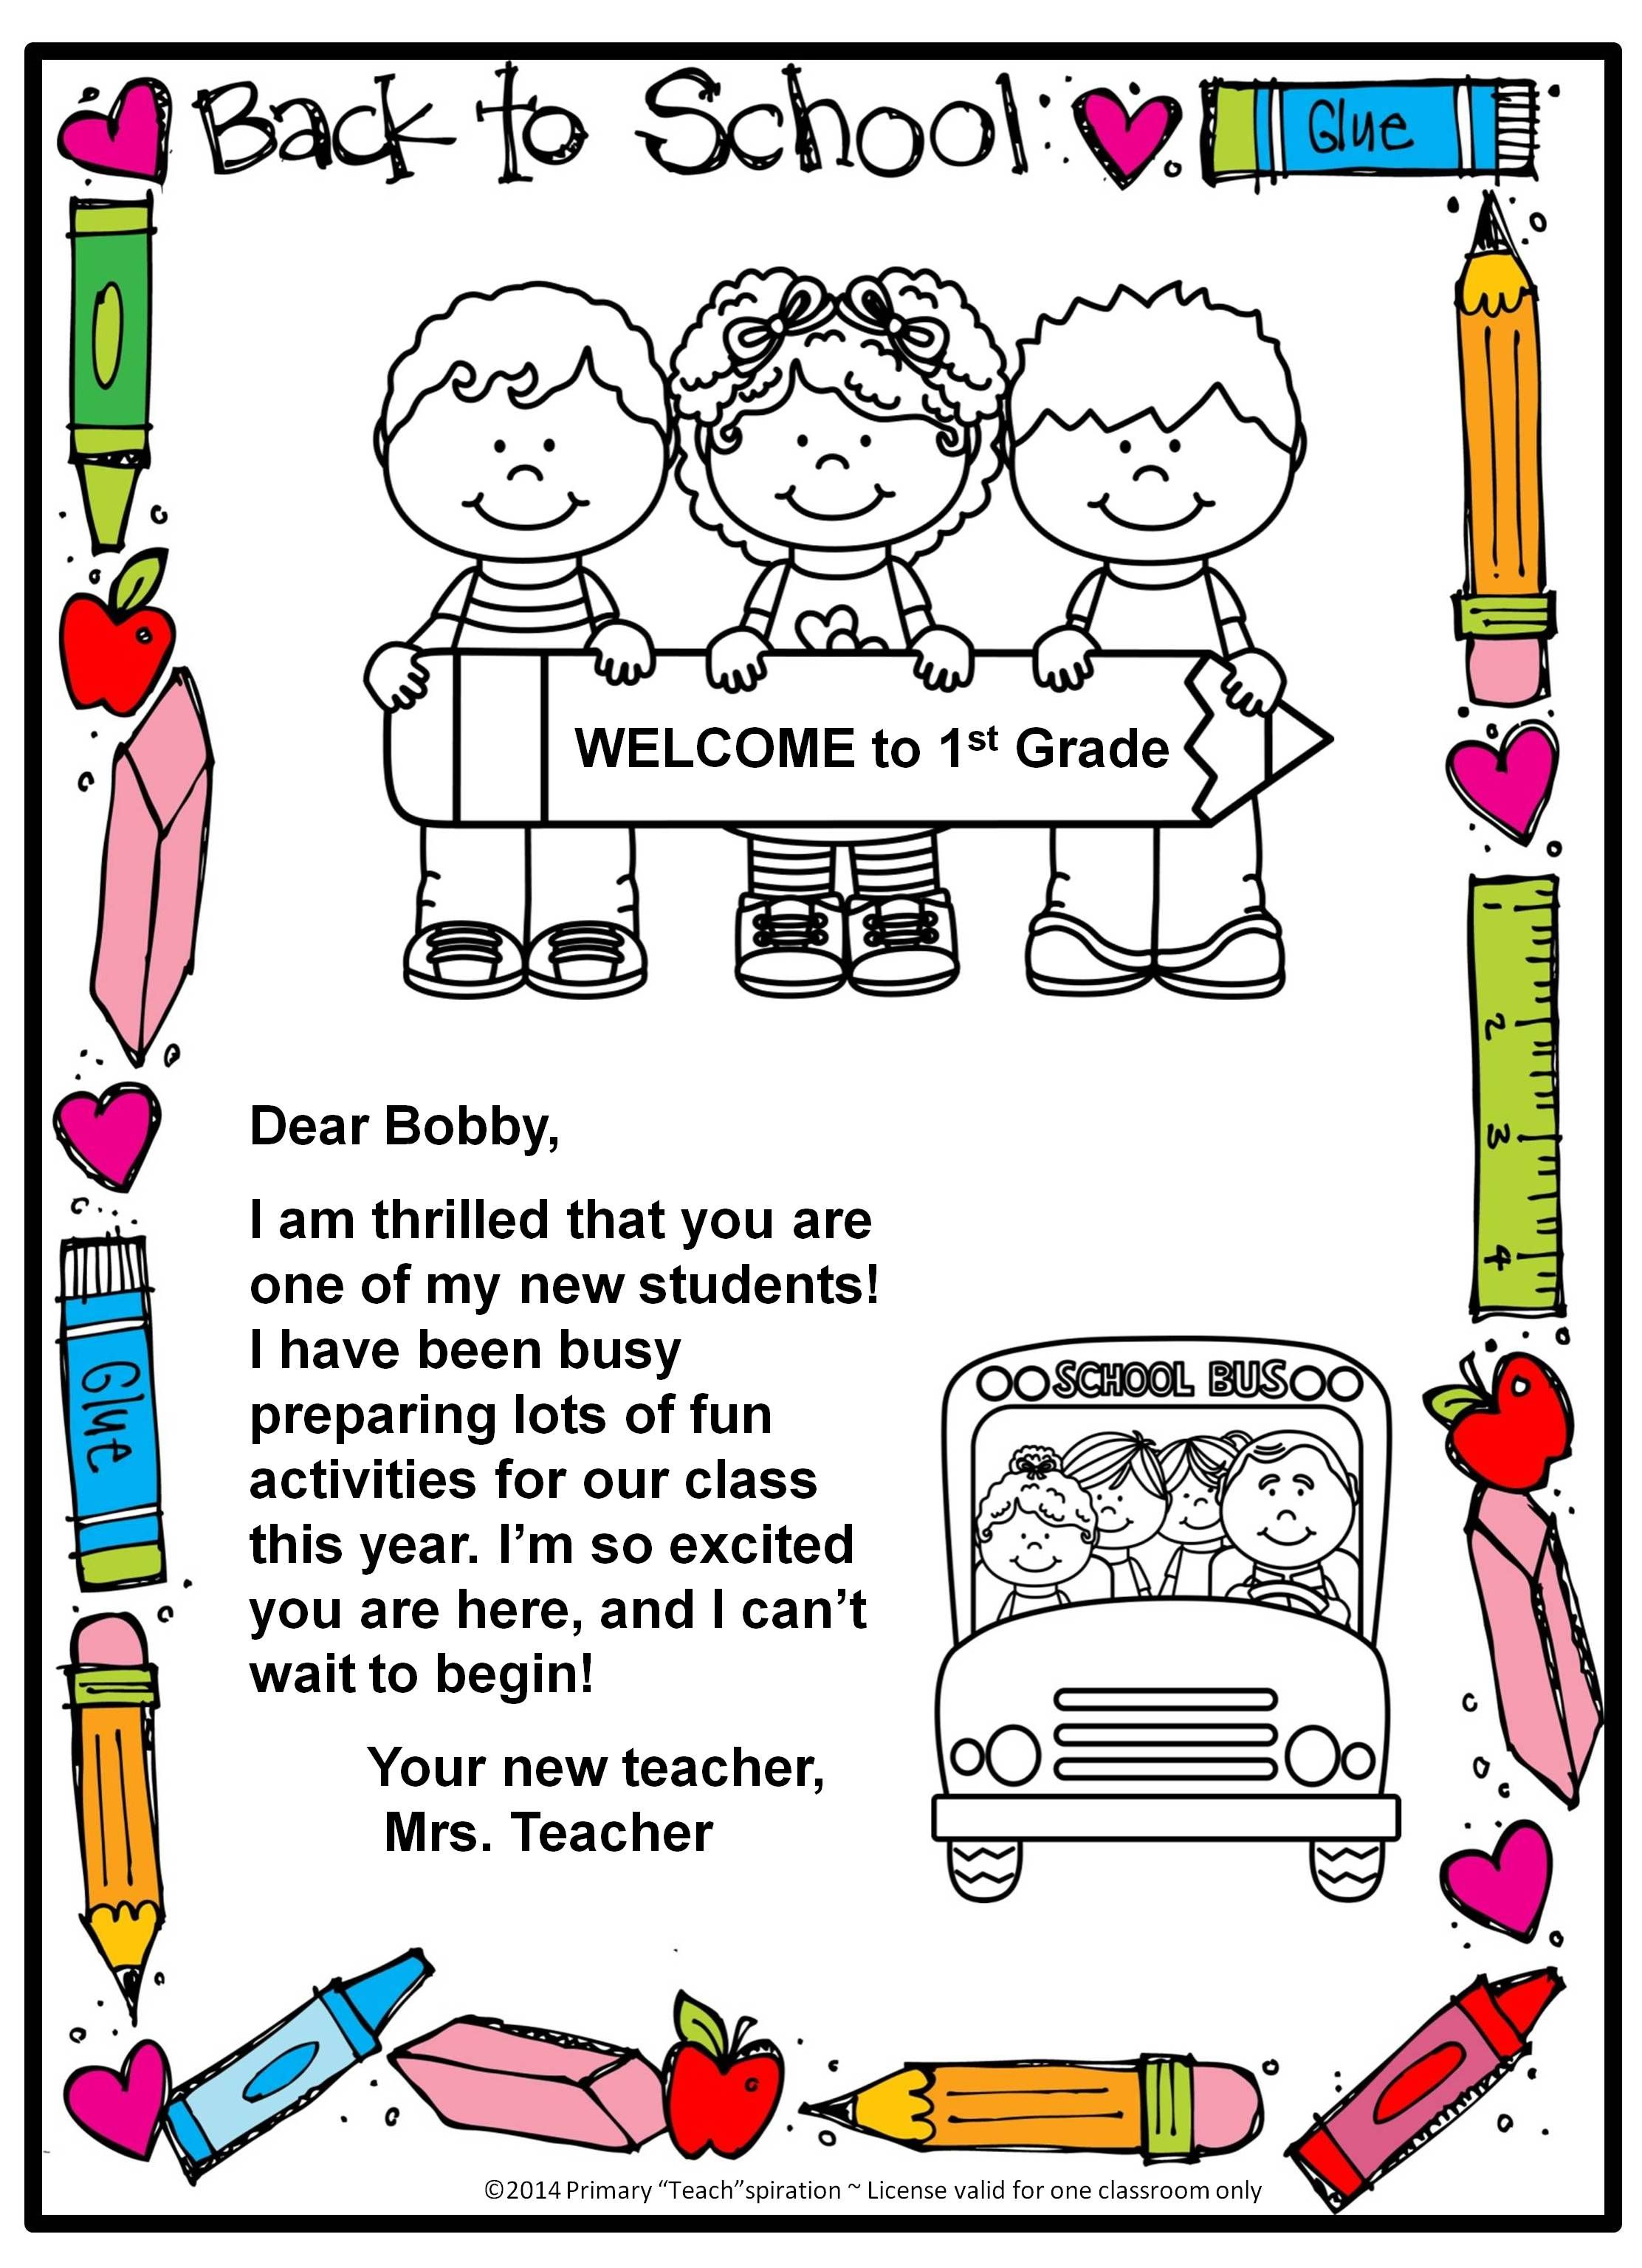 Kindergarten Welcome Letter Template - Free Back to School Wel E Letter and Postcard Editable